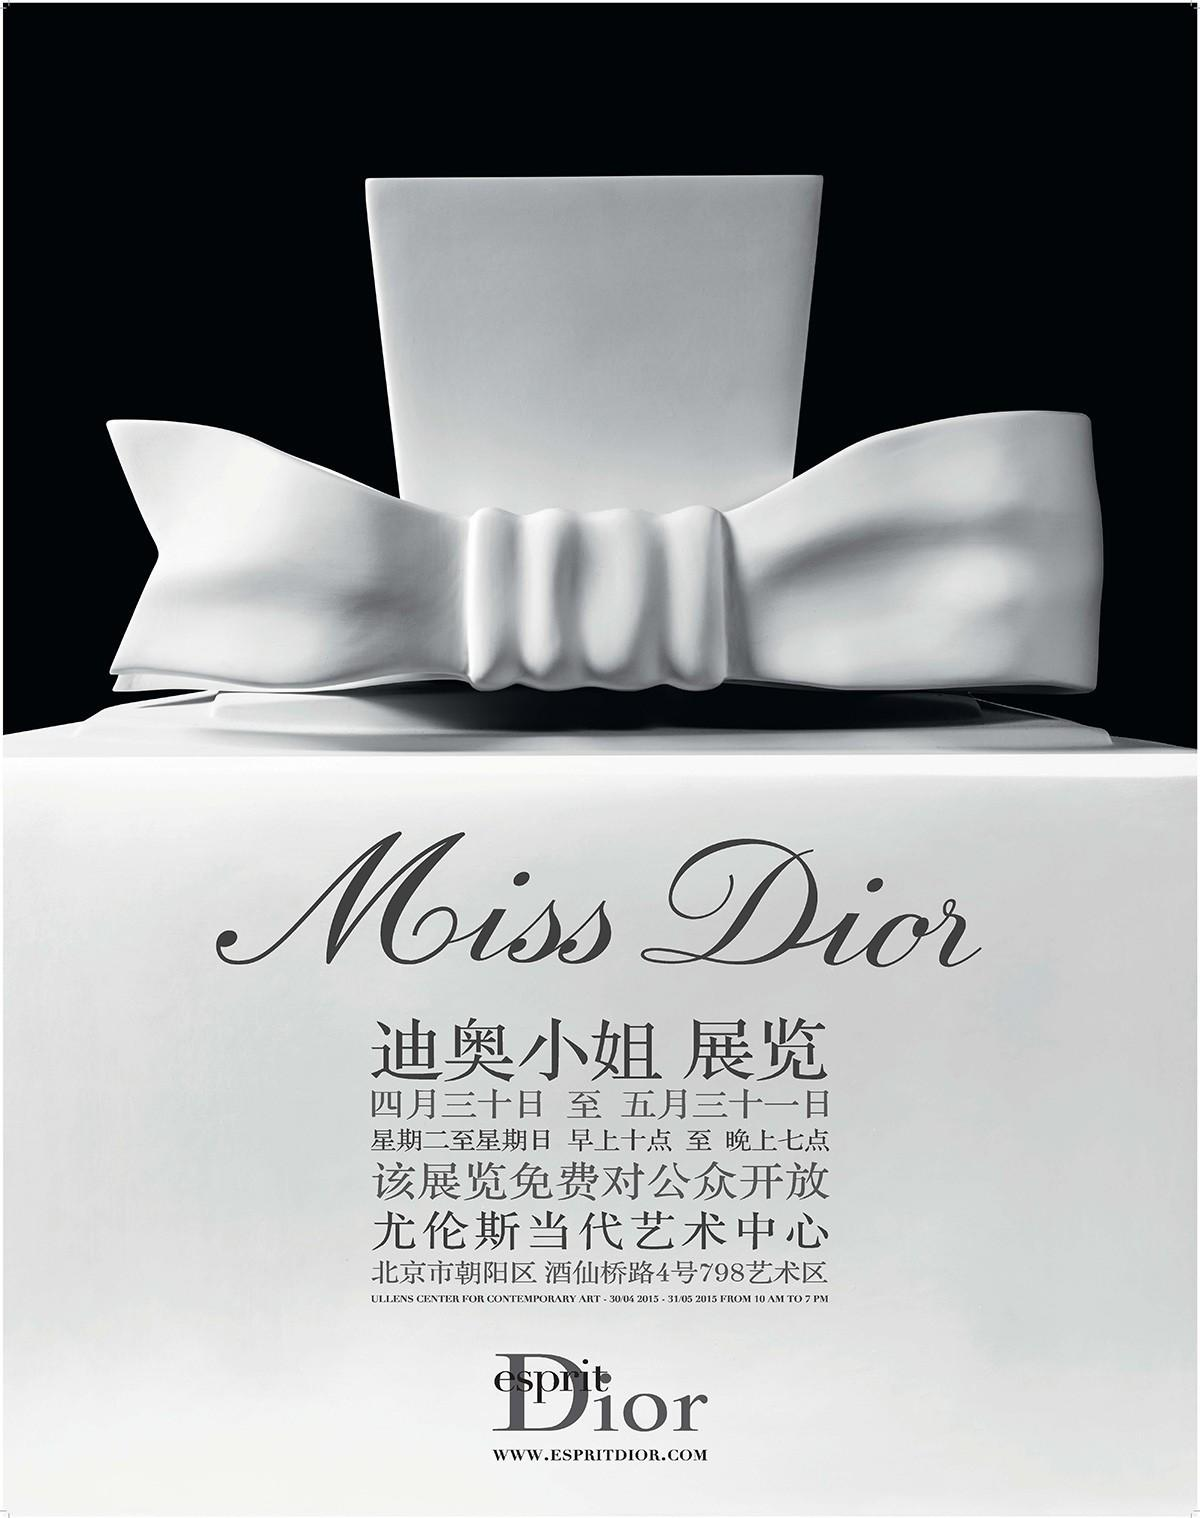 AFFICHES-EXPO_MISS_DIOR2015